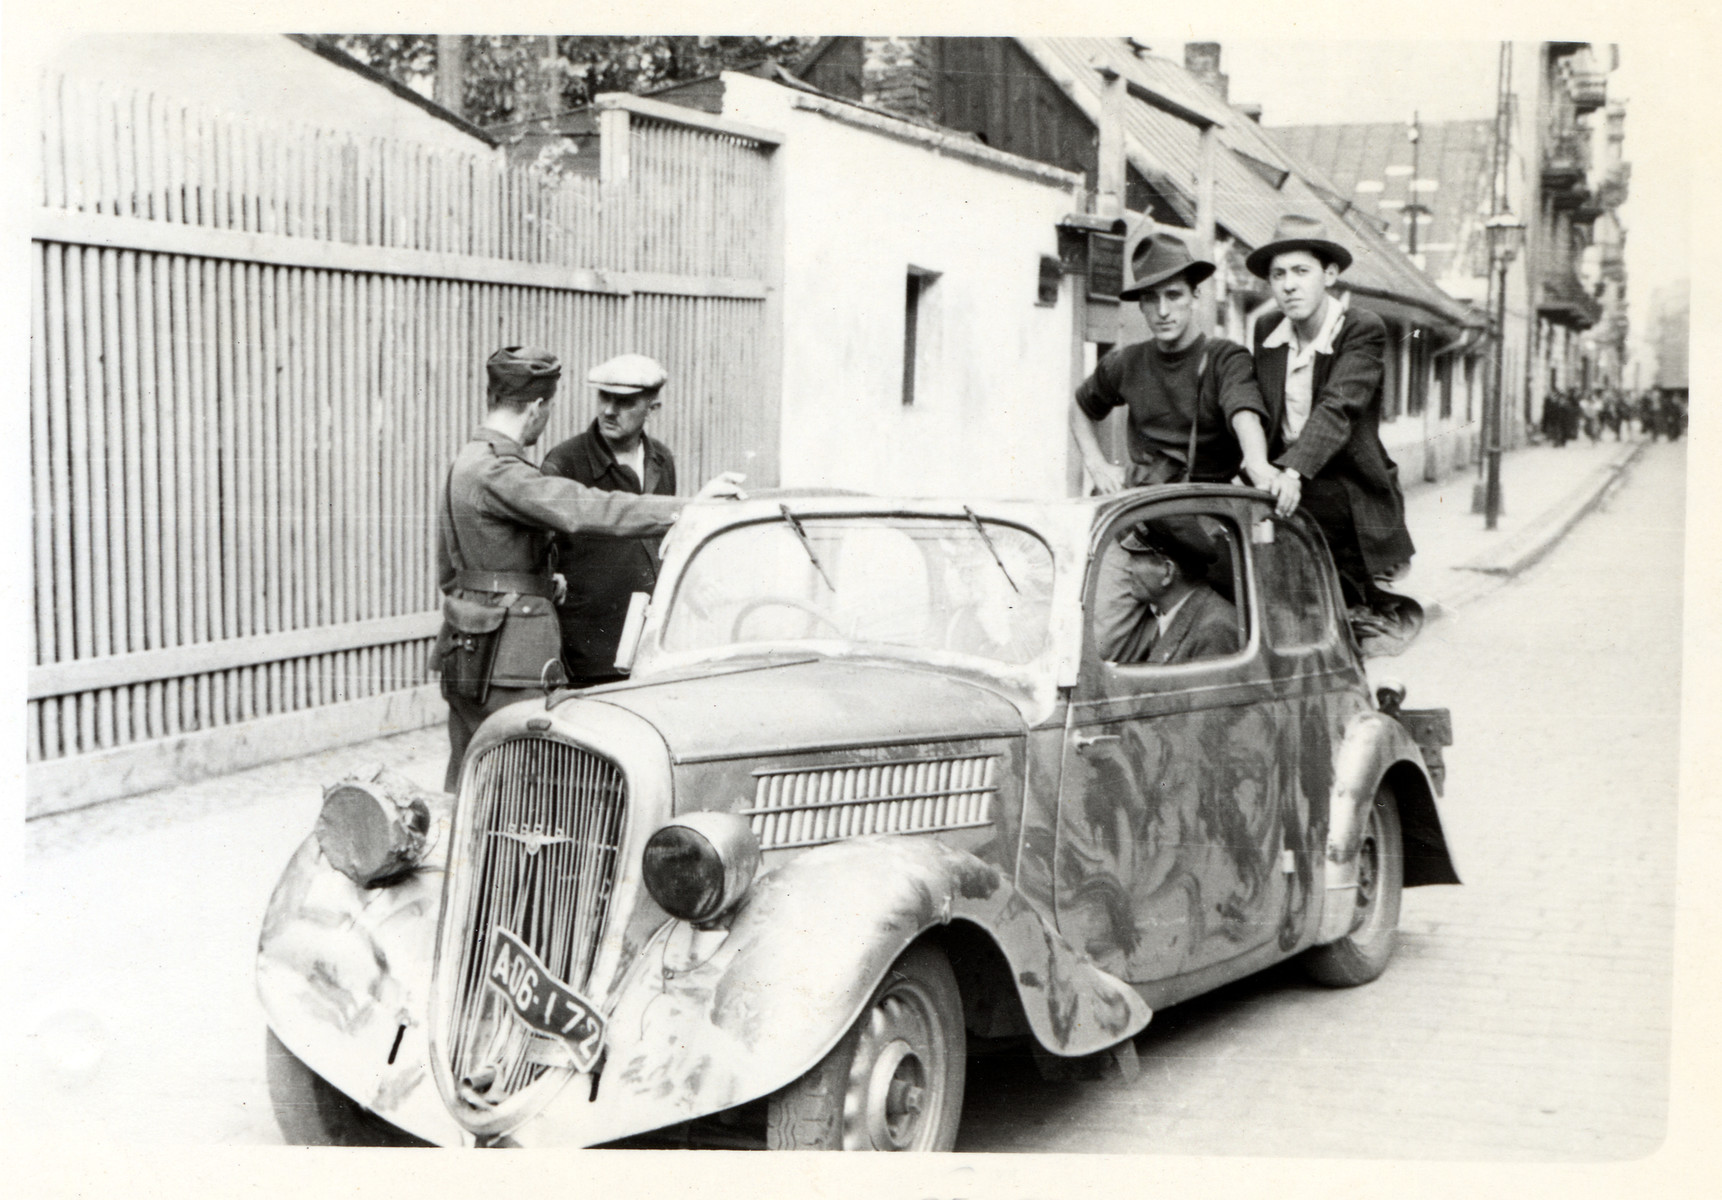 Polish civilians and a soldier loiter about an automobile [possibly Julien Bryan's car] in besieged Warsaw.